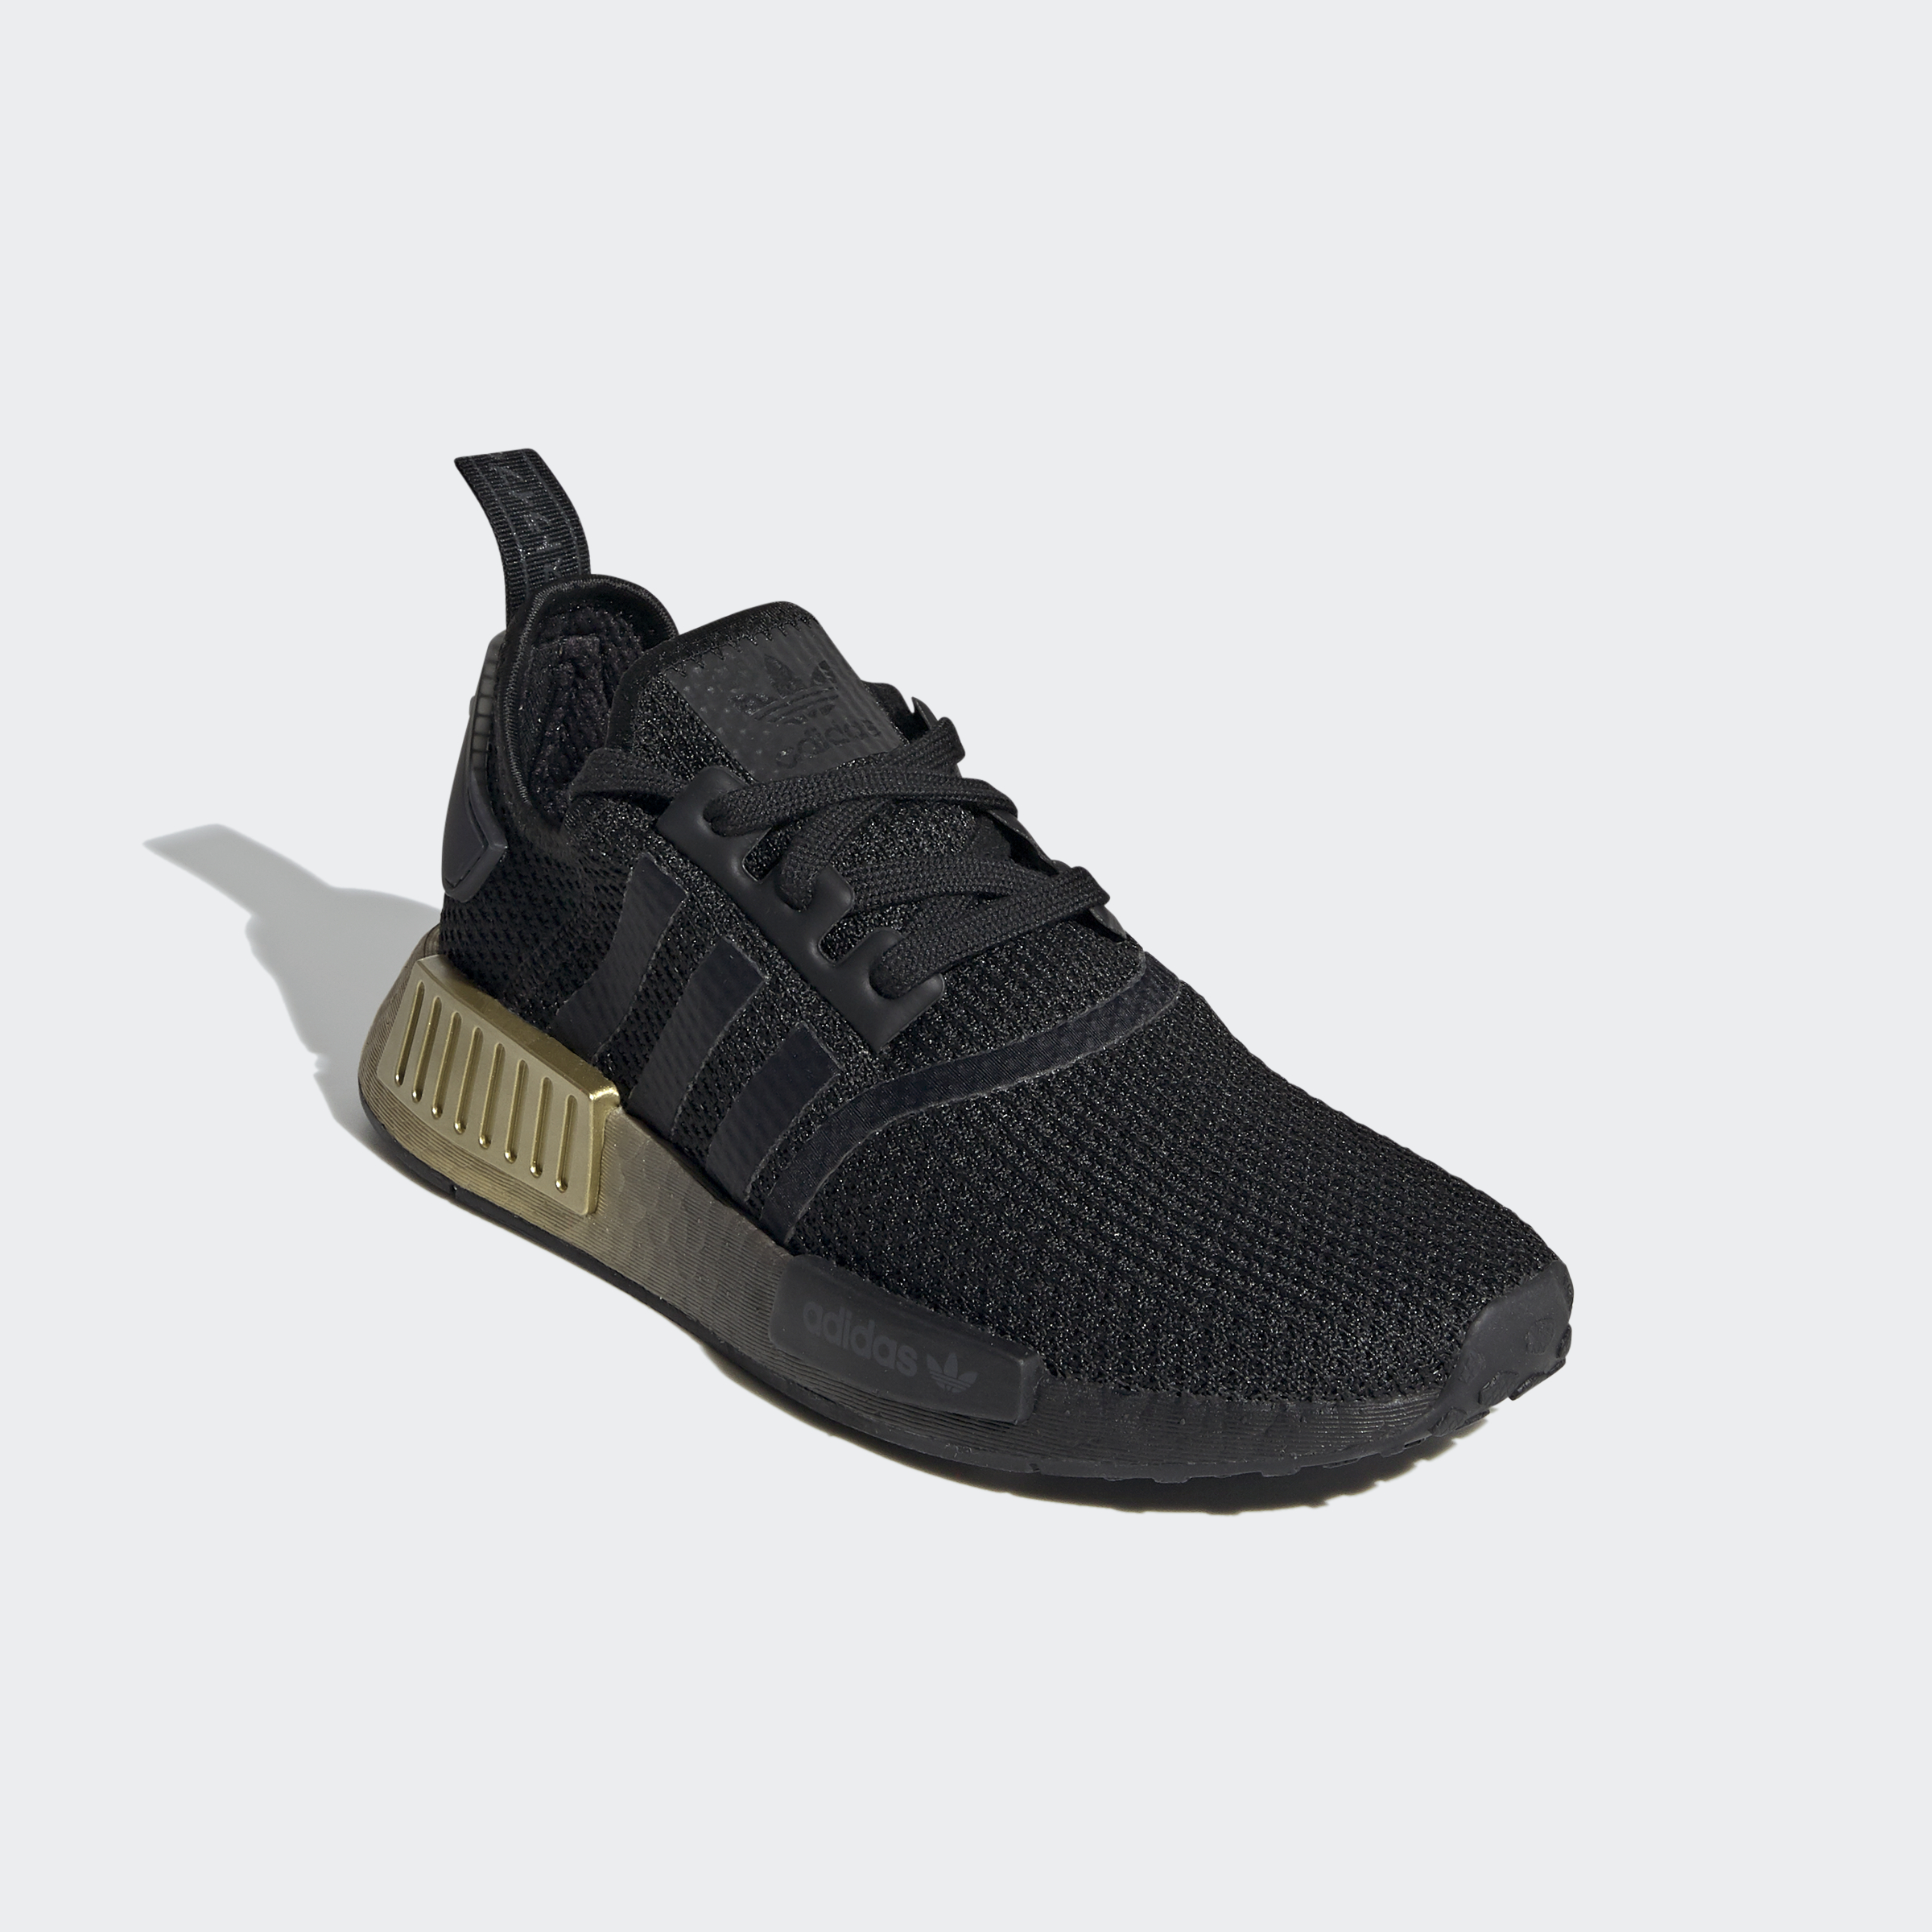 adidas-NMD-R1-Shoes-Women-039-s-Athletic-amp-Sneakers thumbnail 11